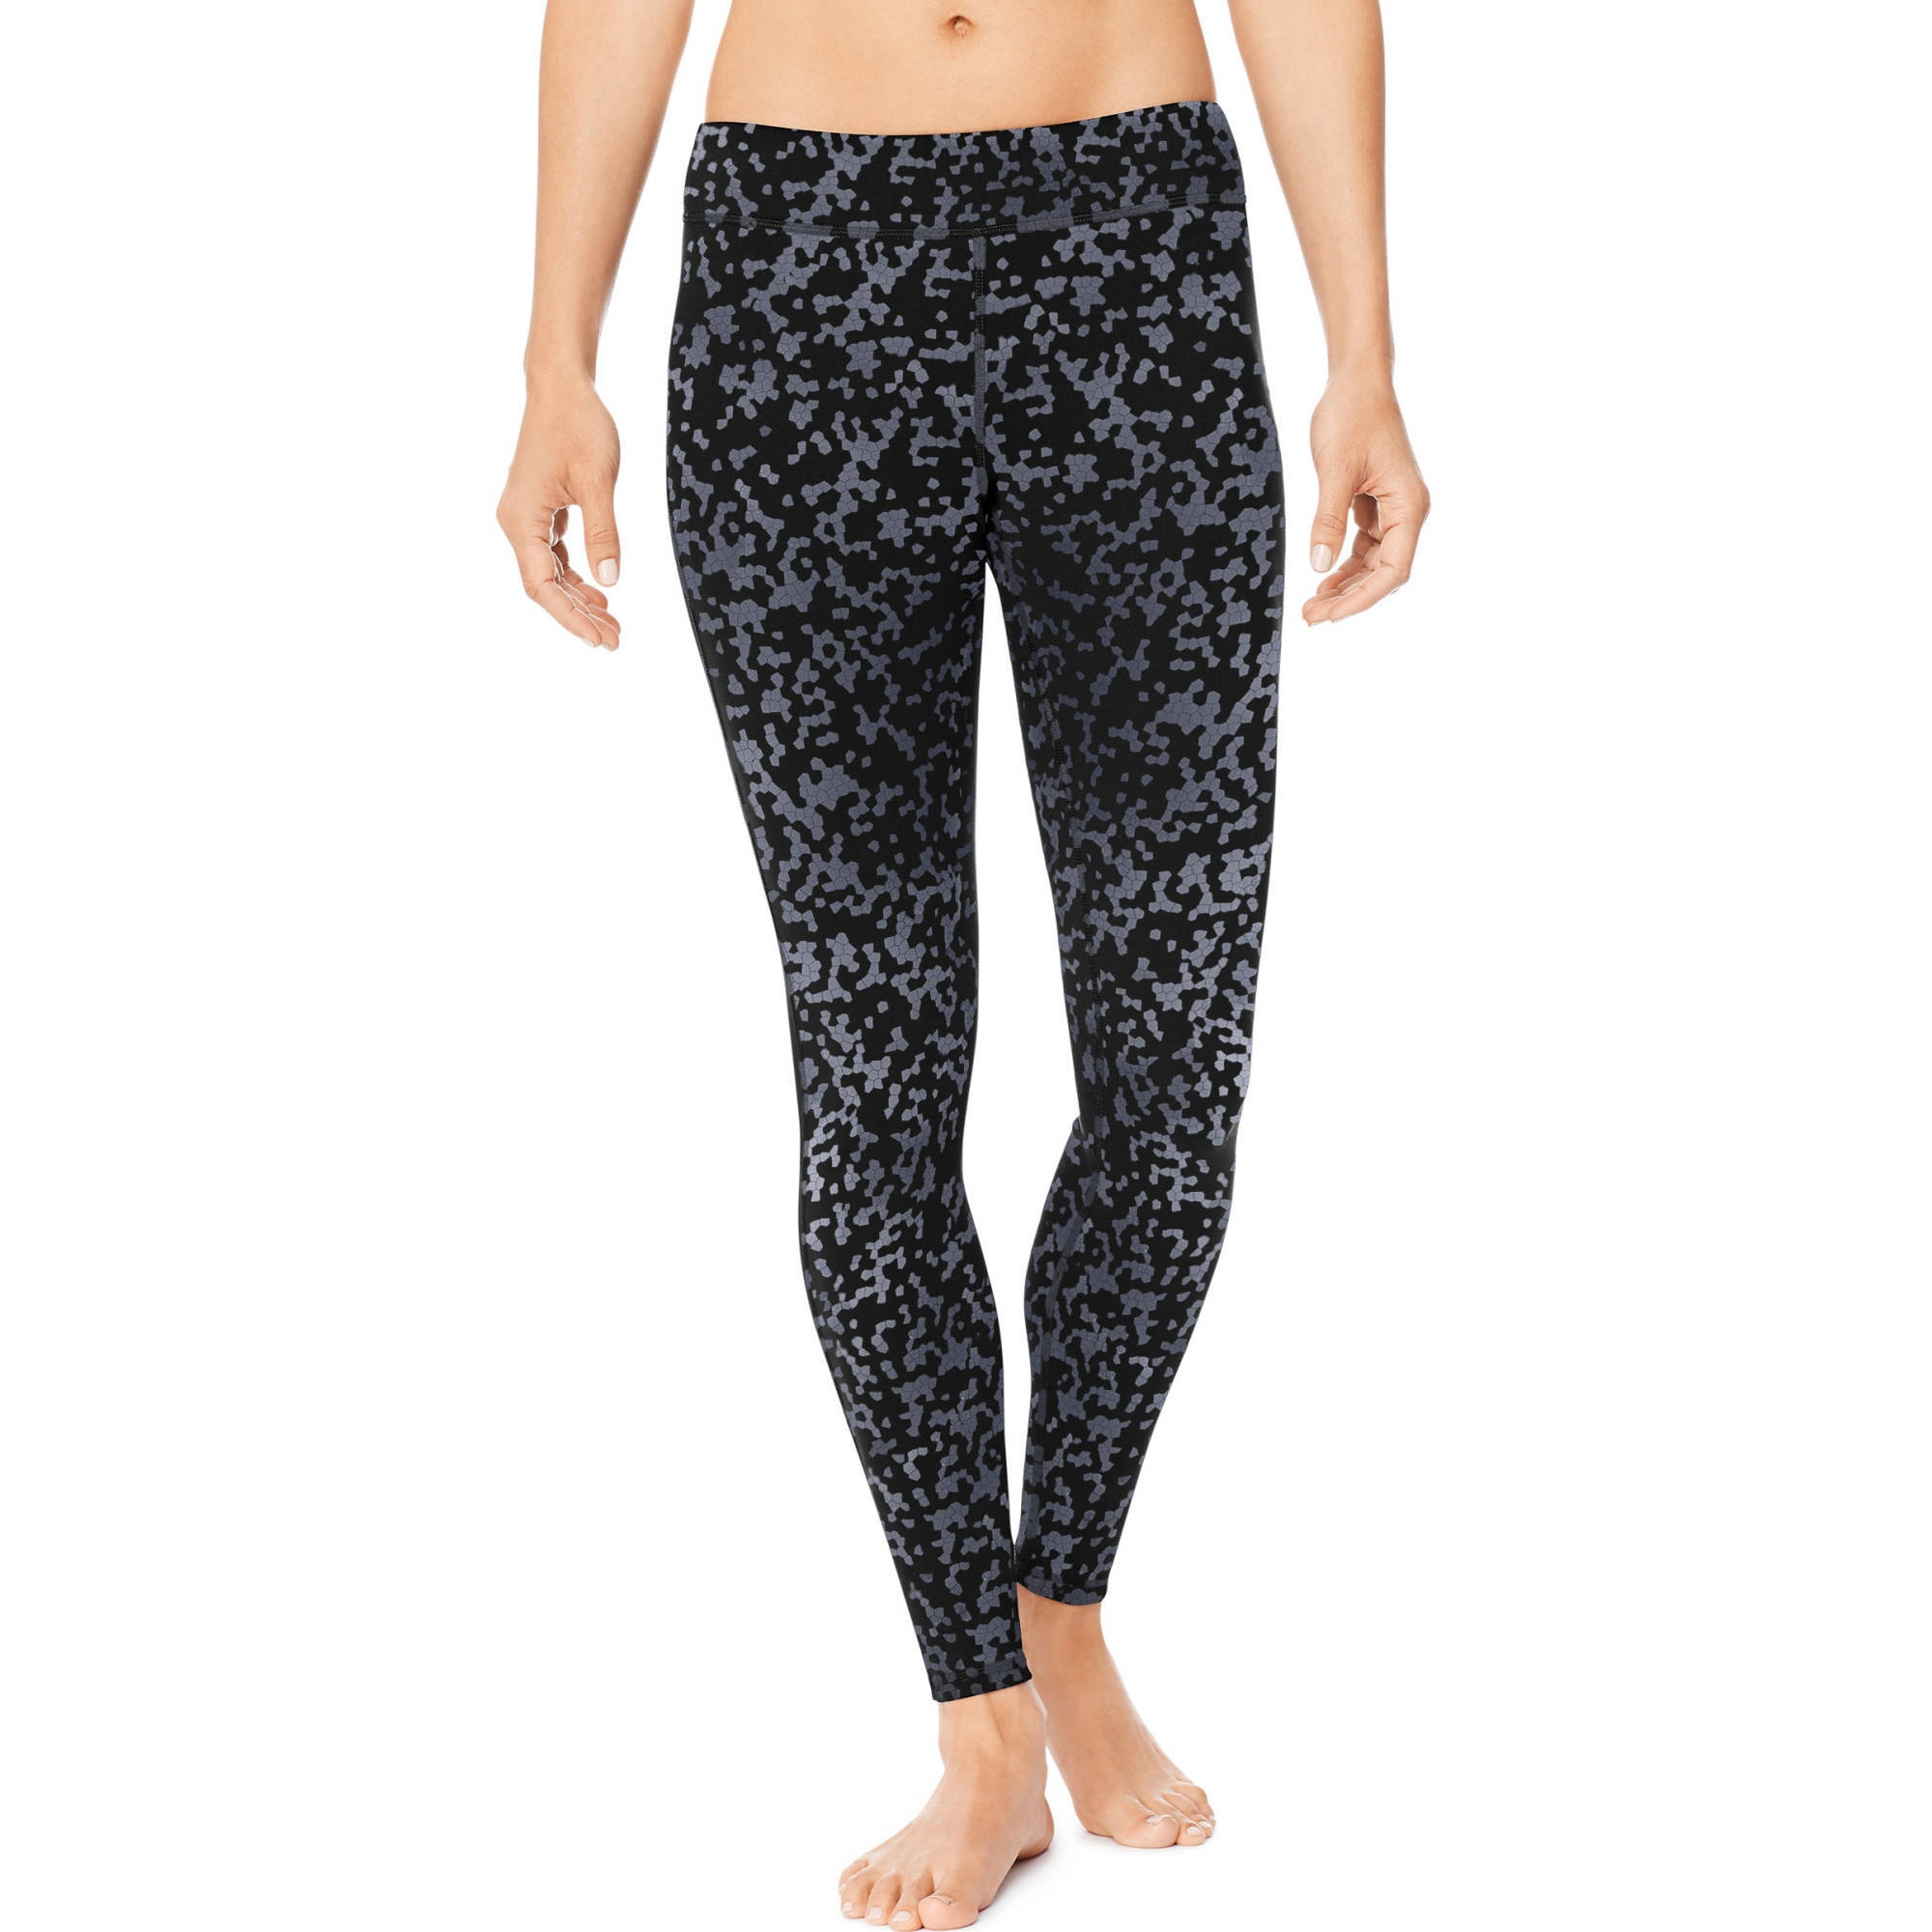 Hanes Sport Women's Performance Leggings